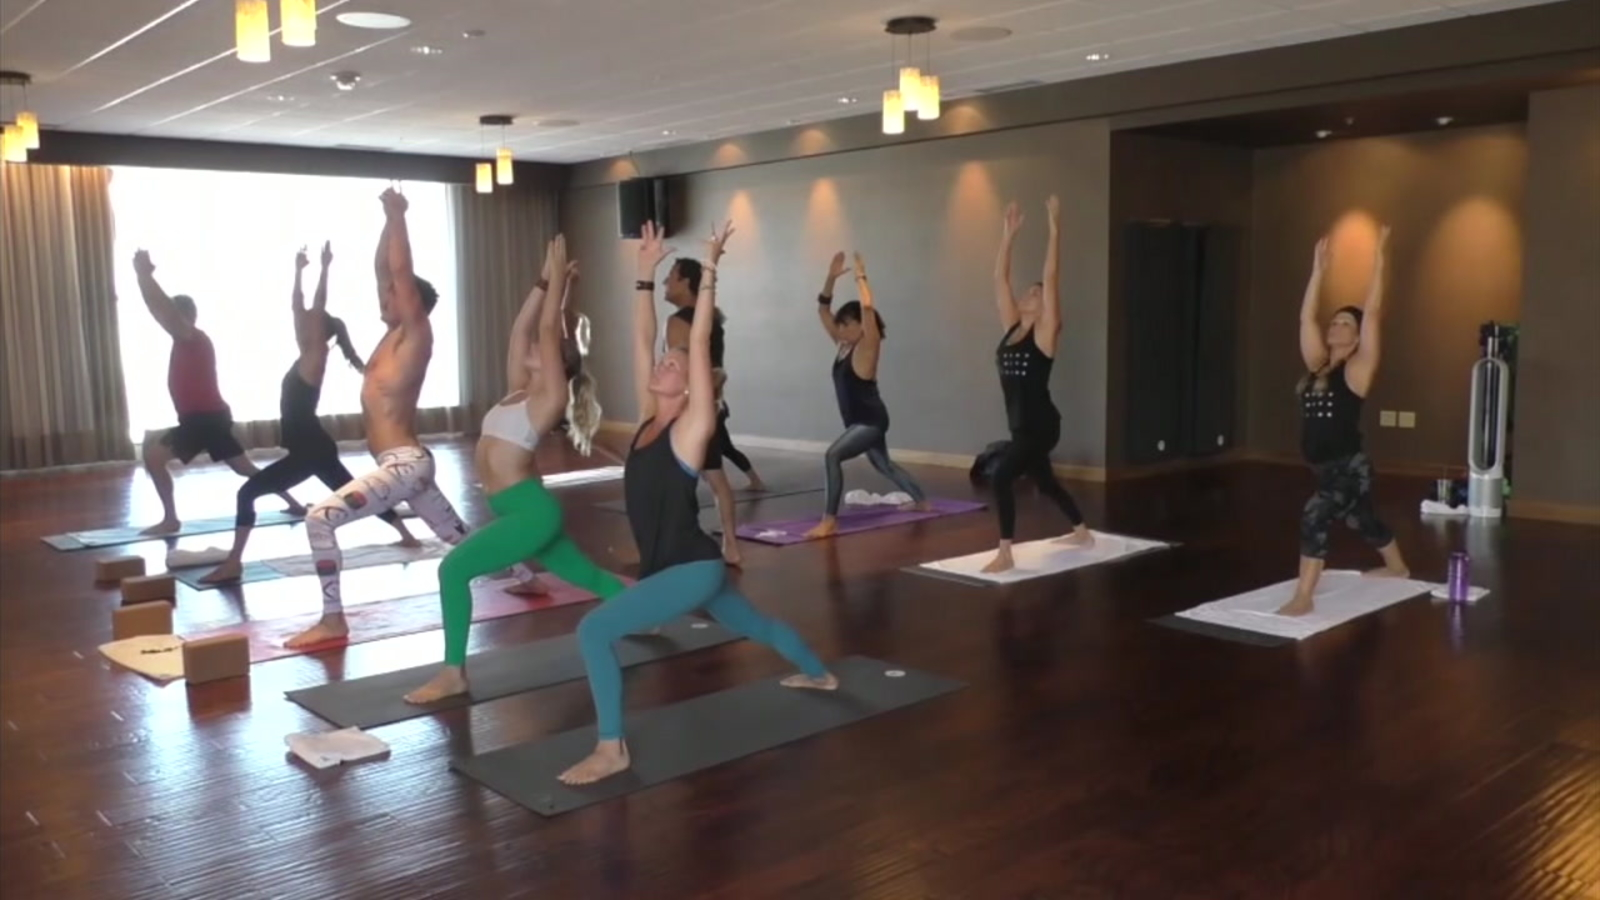 New Class Offers Hot Yoga And Hot High Intensity Interval Training Abc7 Los Angeles